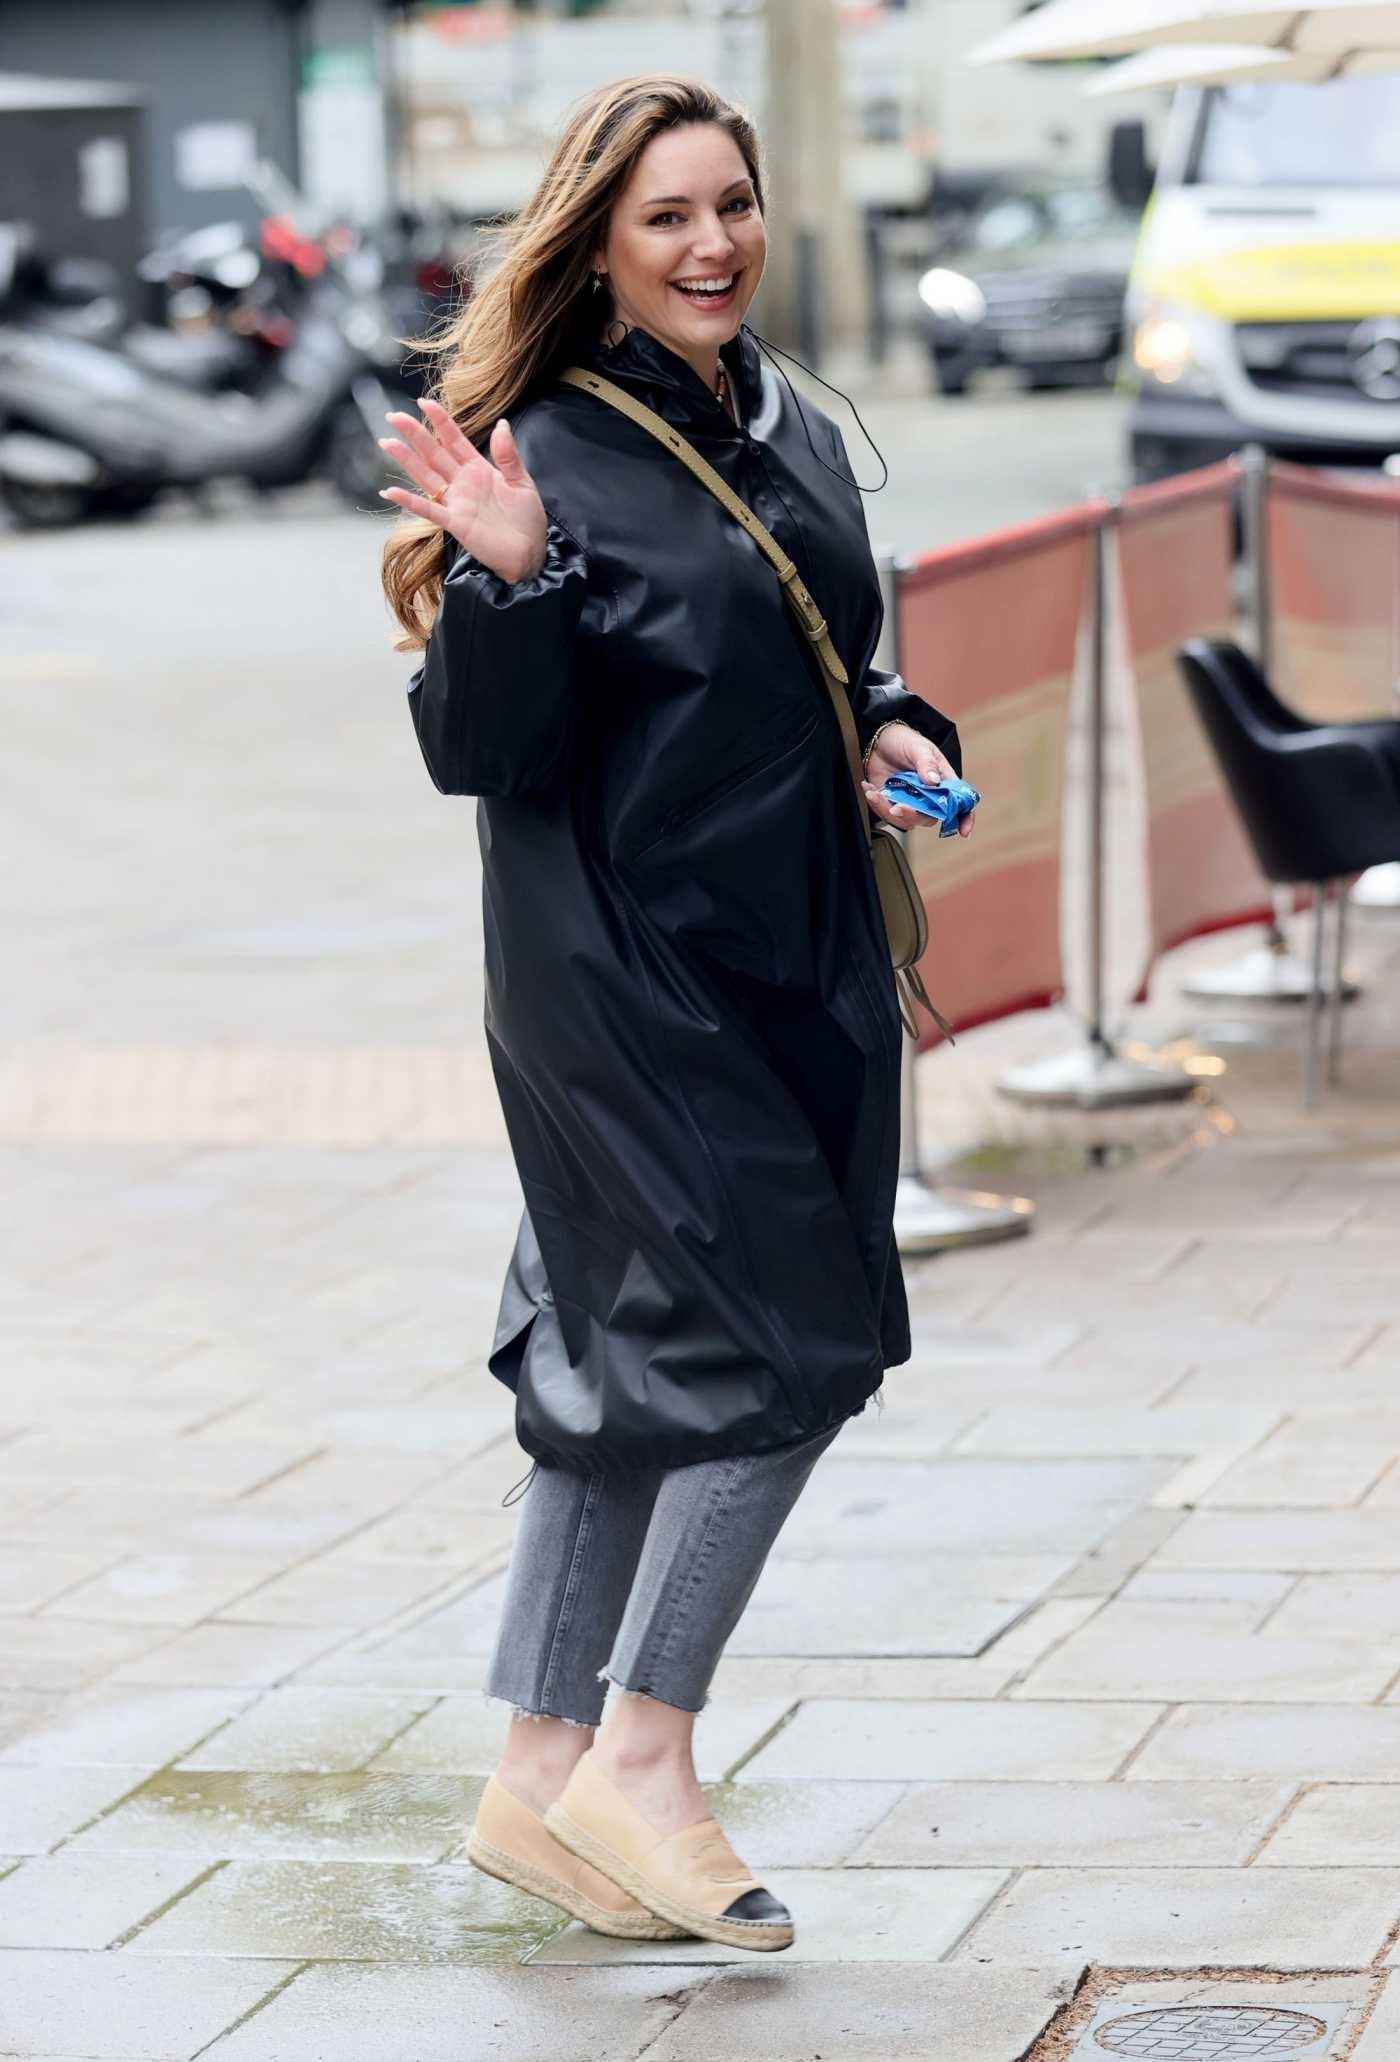 Kelly Brook in a Black Raincoat Arrives at the Heart Radio Studios in London 05/13/2021